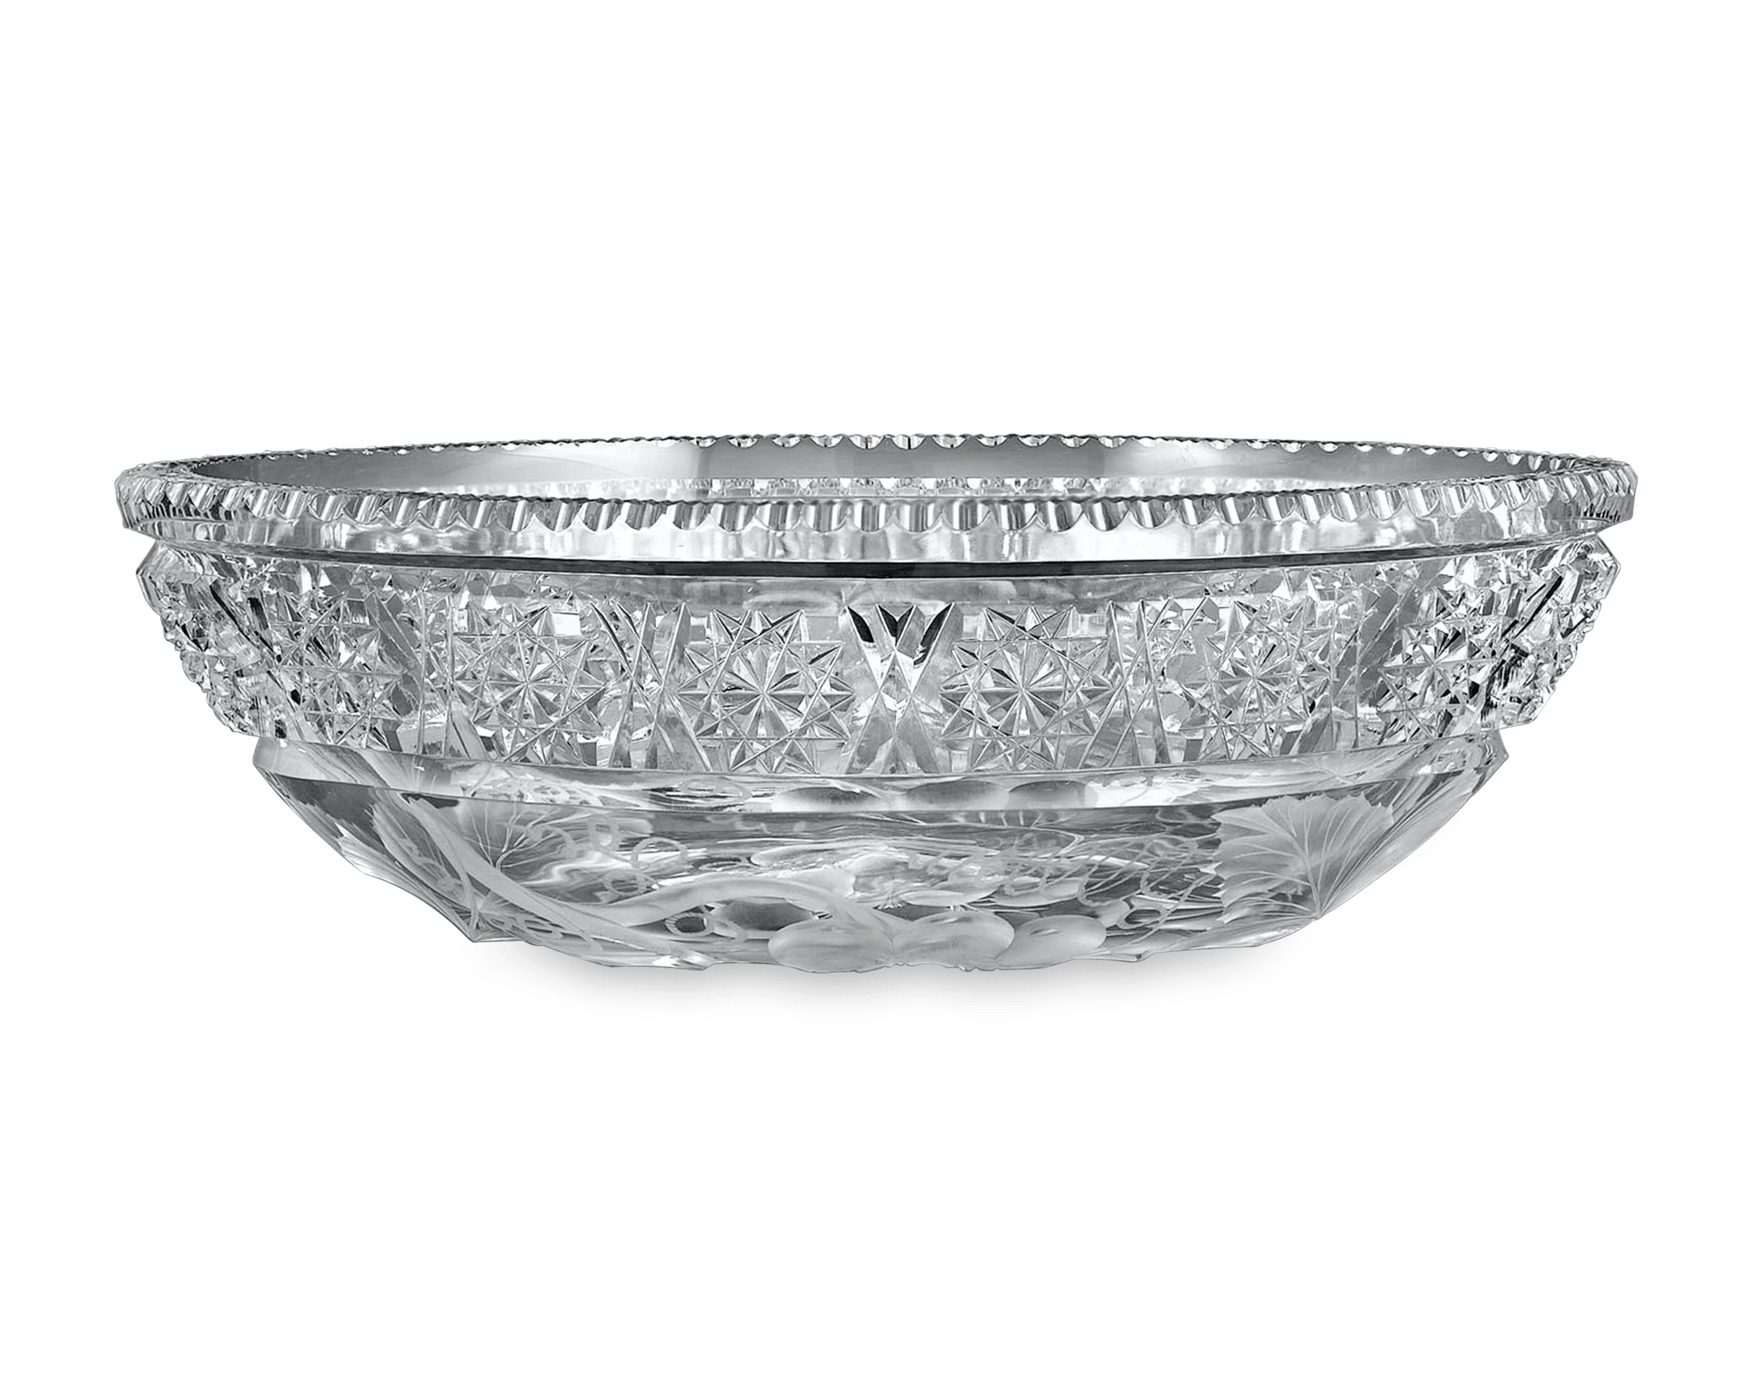 Bowl of punch png. Antique cut glass american